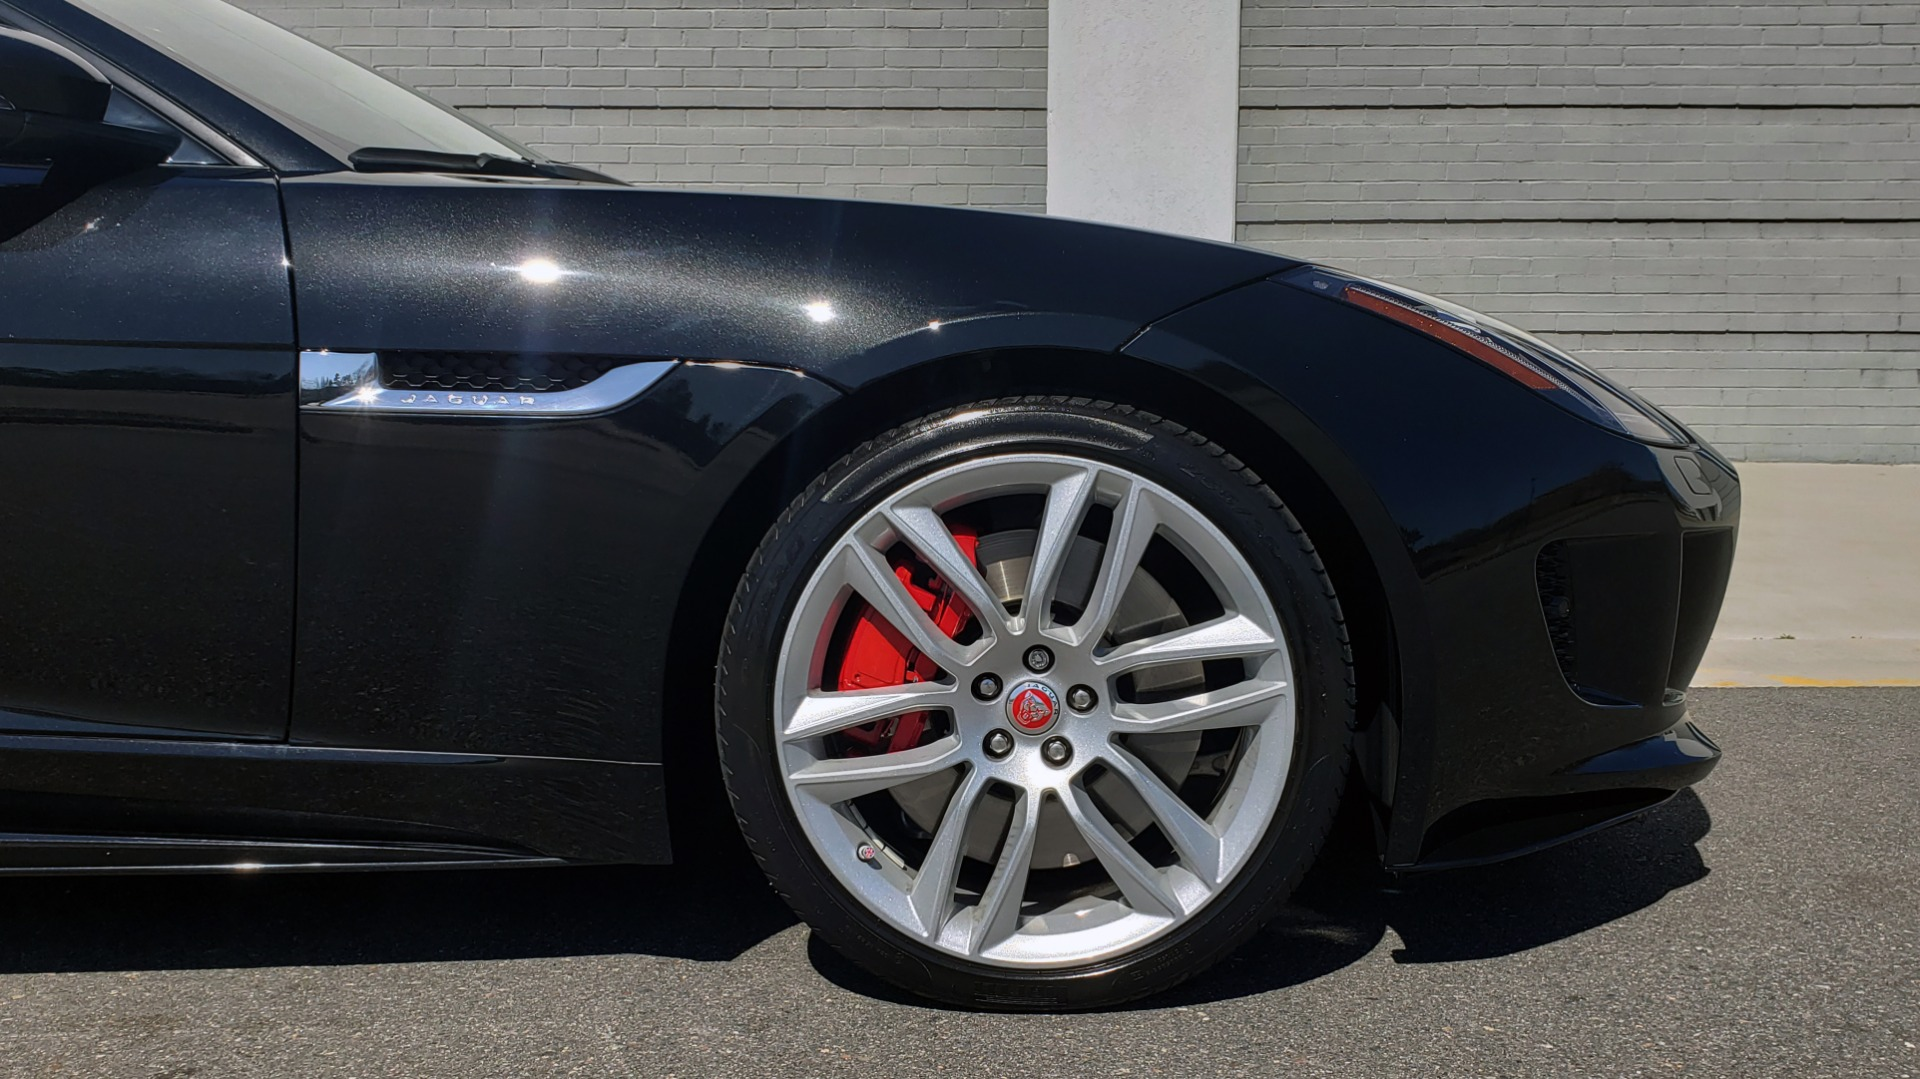 Used 2016 Jaguar F-TYPE R CONVERTIBLE / SC 5.0L 550HP / VISION PACK 3 / BSM / REARVIEW for sale $63,000 at Formula Imports in Charlotte NC 28227 47